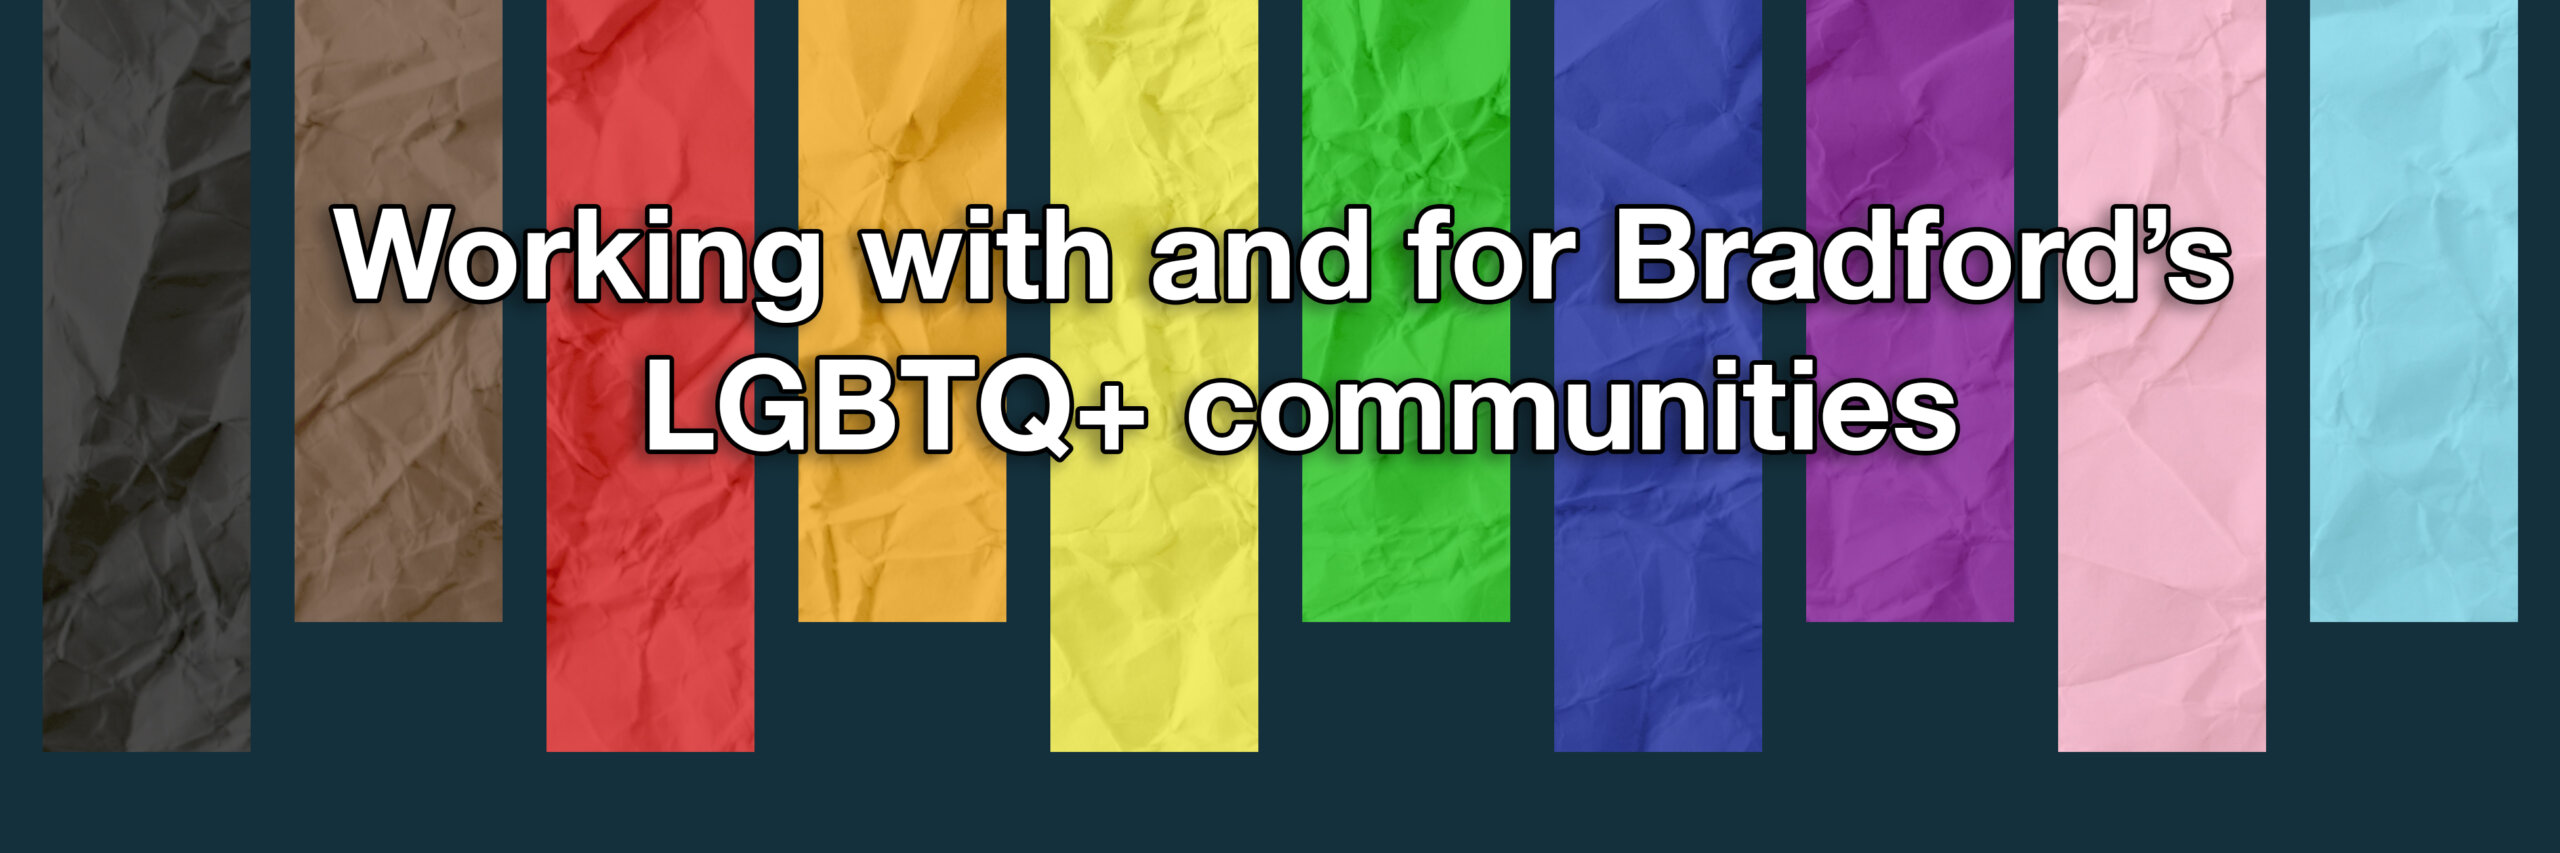 Bradford LGBTQ+ Strategic Partnership: Registered Charity Number 1115525, Companies House Number 05545105